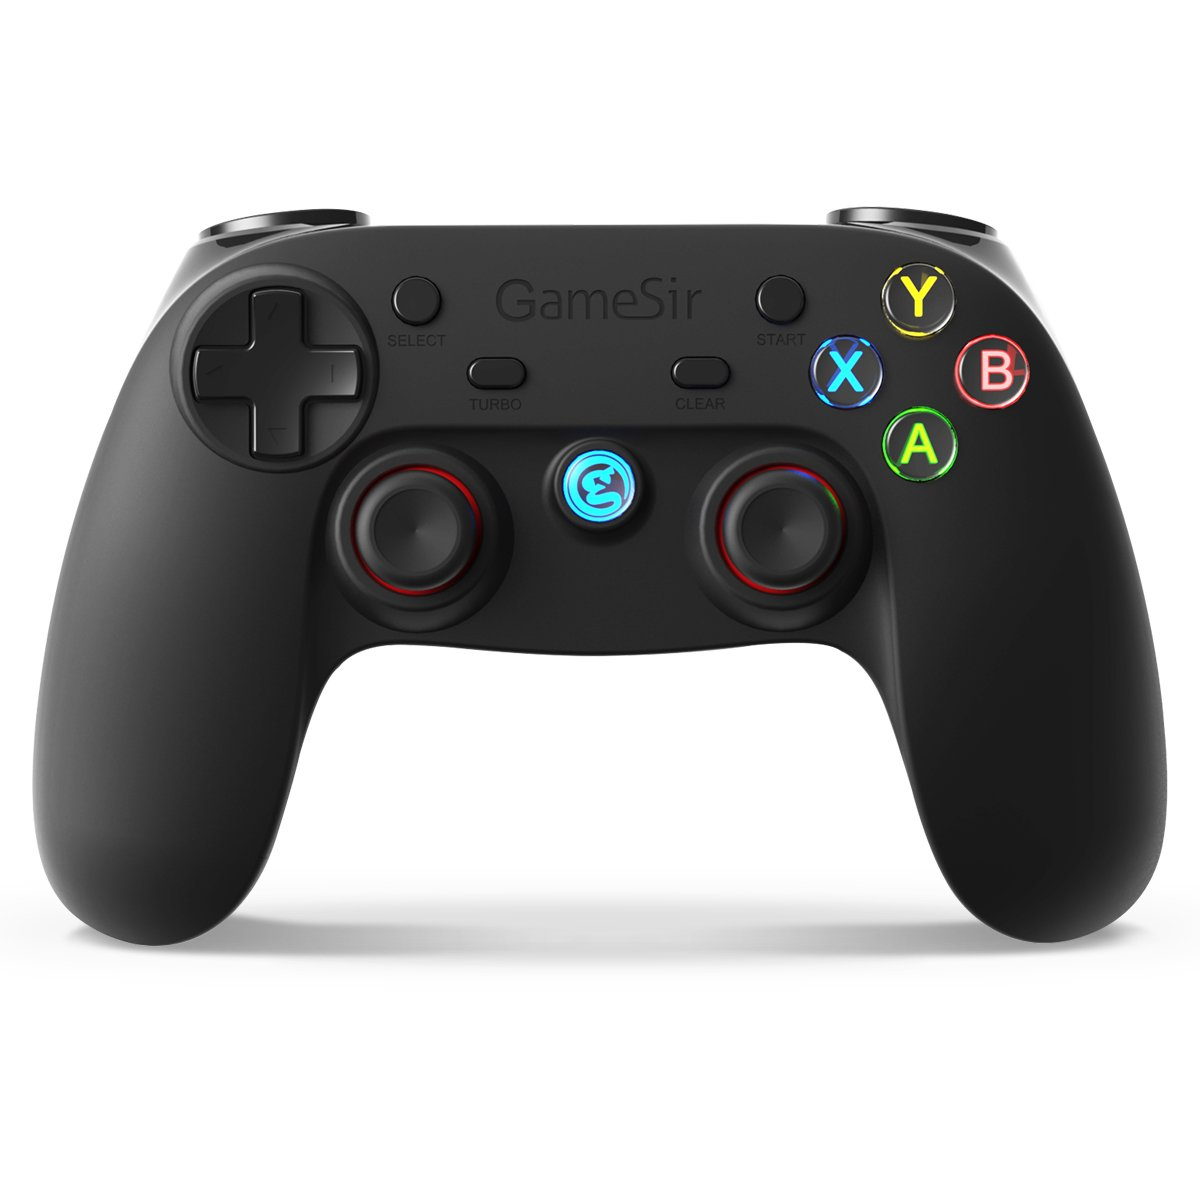 GameSir G3s – Gamepad Wireless, Controller di Gioco di 2.4GHz e di Bluetooth 4.0, Compatibile per Windows PC, PS3, Smart-TV, Samsung VR, Smartphone/ Tablet Android etc.